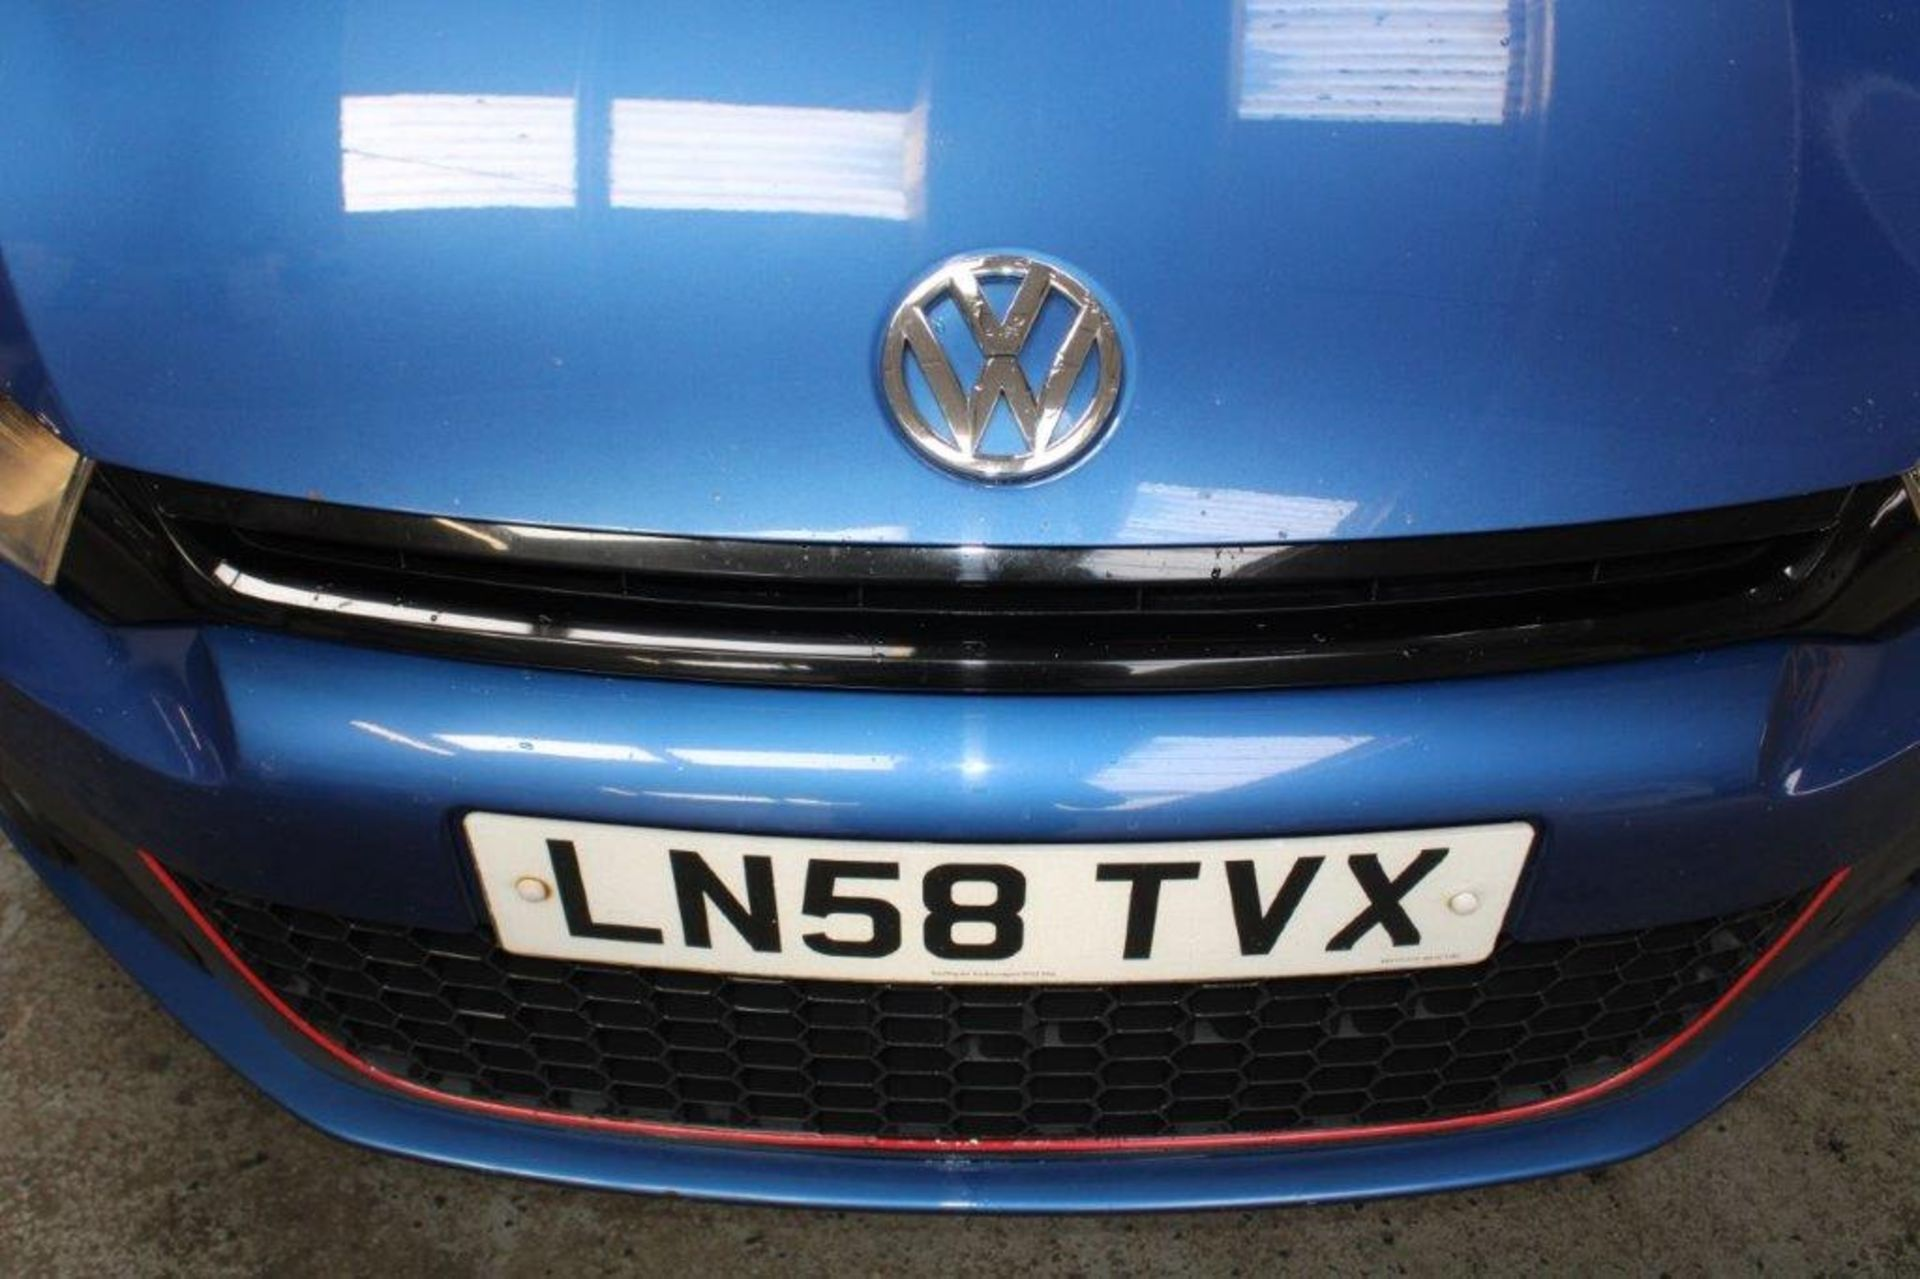 58 08 VW Scirocco GT - Image 15 of 29